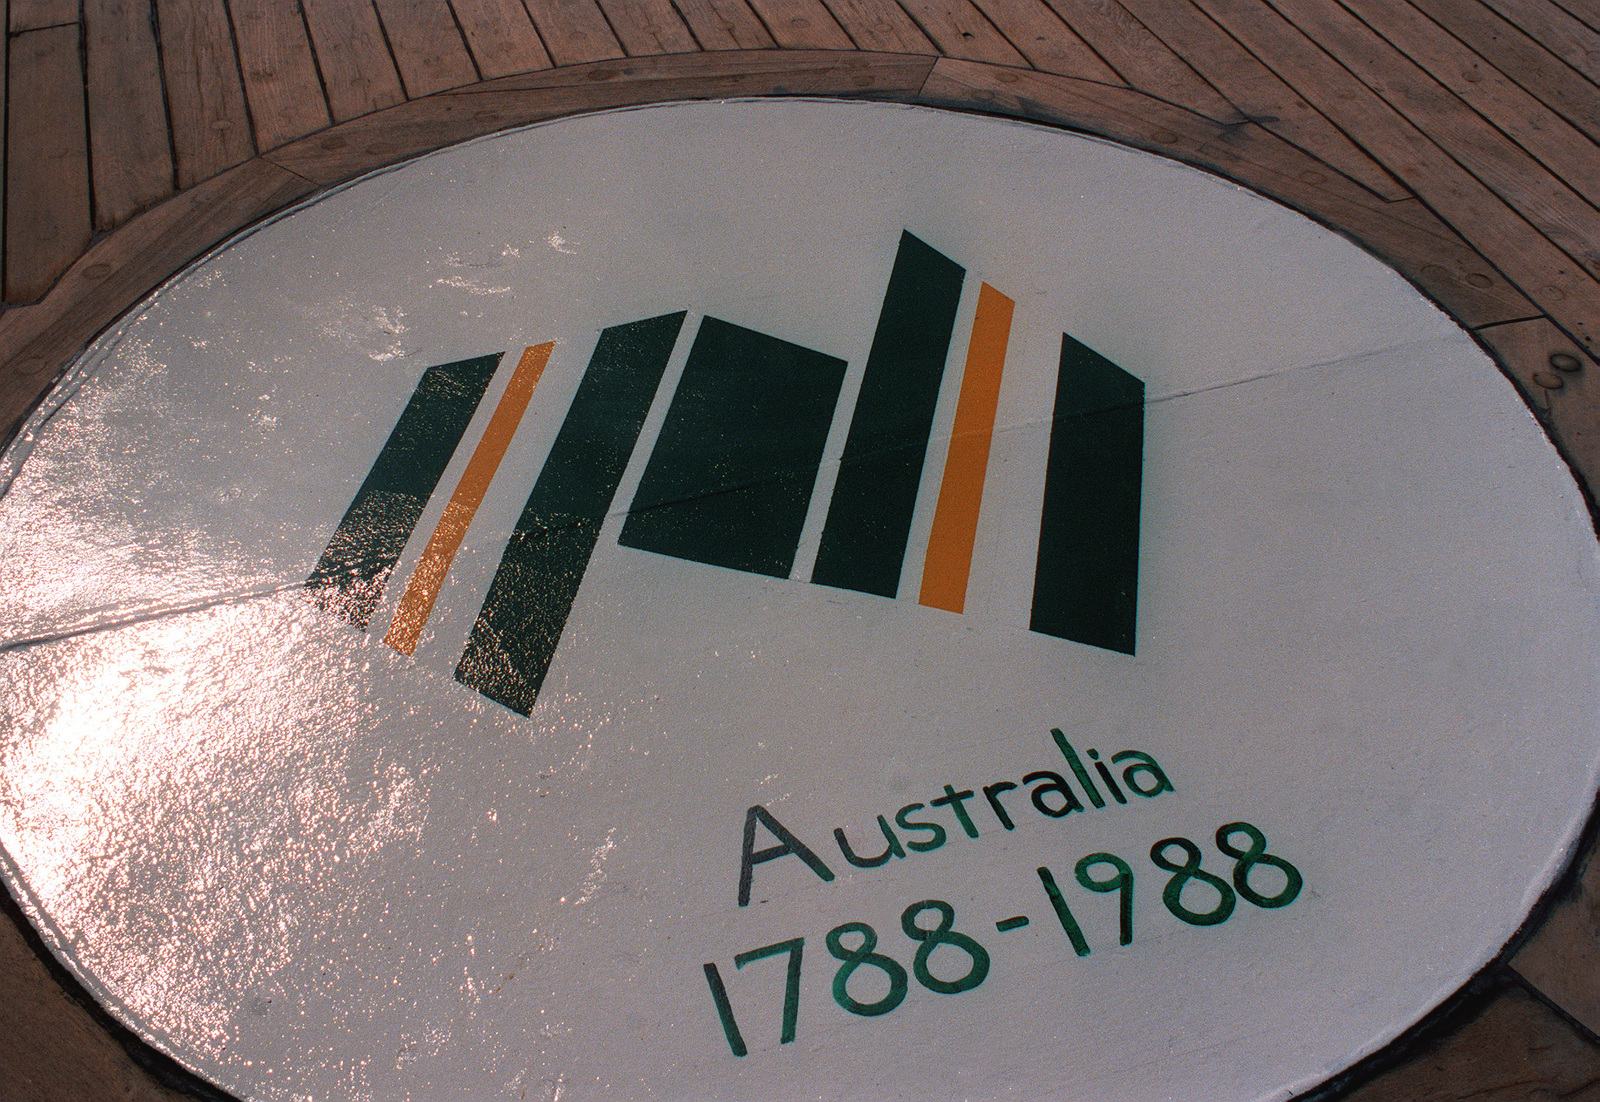 A view of the Australian bicentennial emblem painted on the metal plate covering one of the former forward 40mm gun mount areas aboard the battleship USS JERSEY (BB-62). Exact Date Shot Unknown